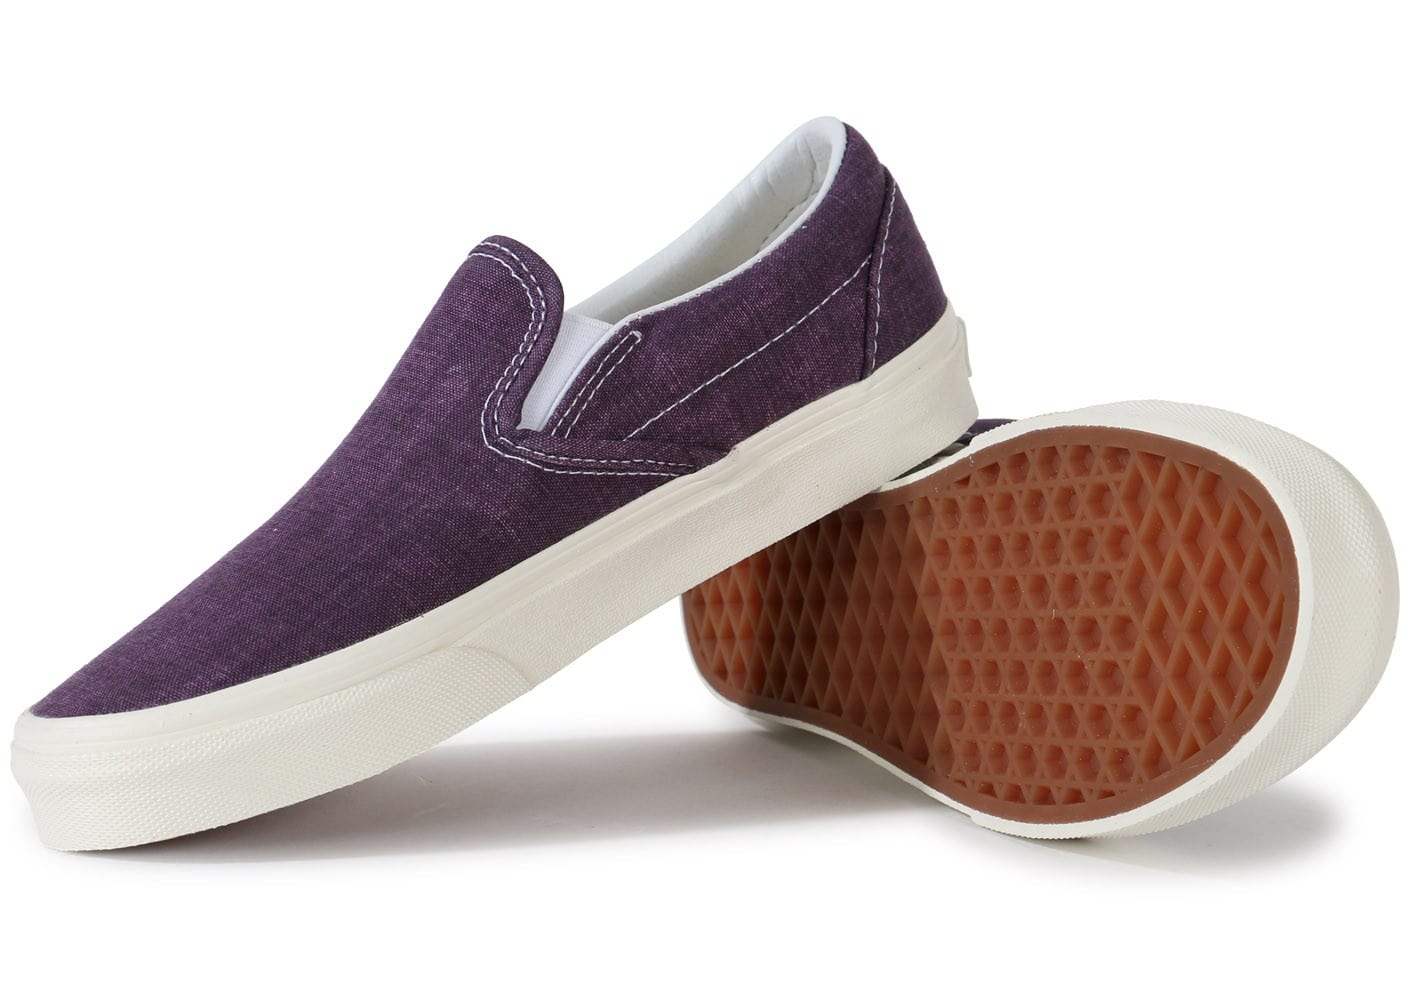 vans classic slip on mauve chaussures chaussures chausport. Black Bedroom Furniture Sets. Home Design Ideas